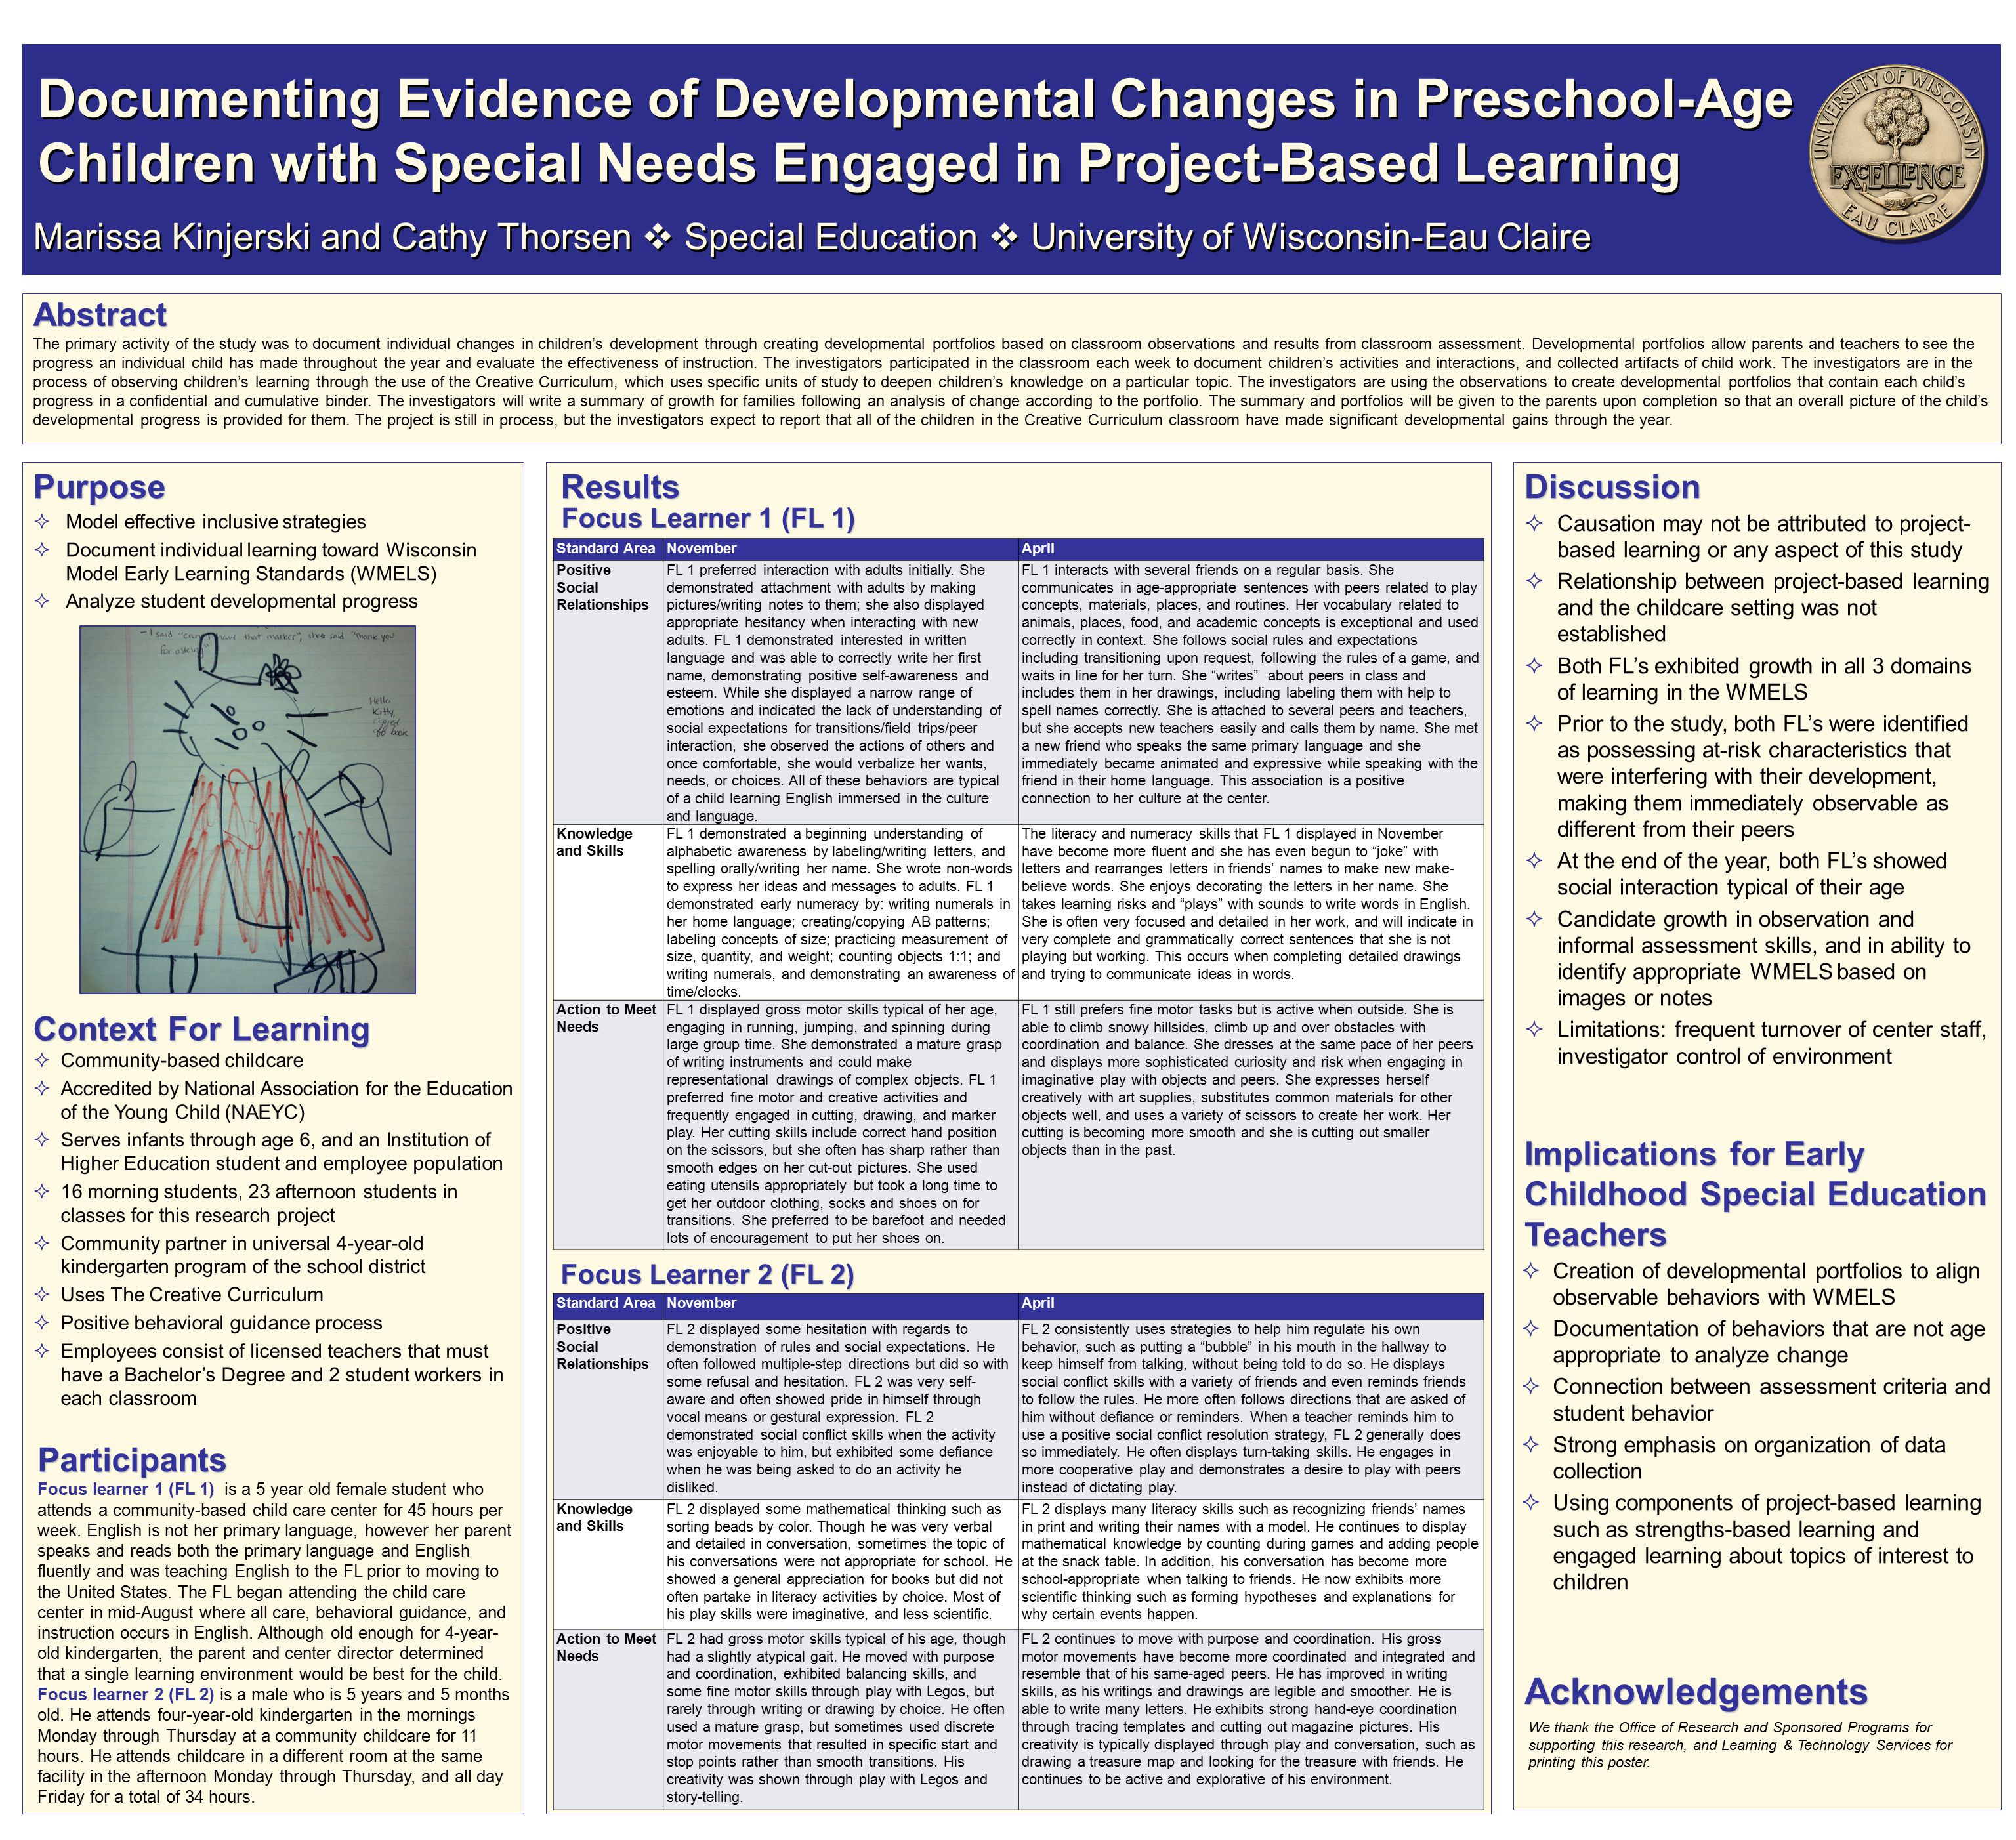 Standard AreaNovemberApril Positive Social Relationships FL 1 preferred interaction with adults initially.